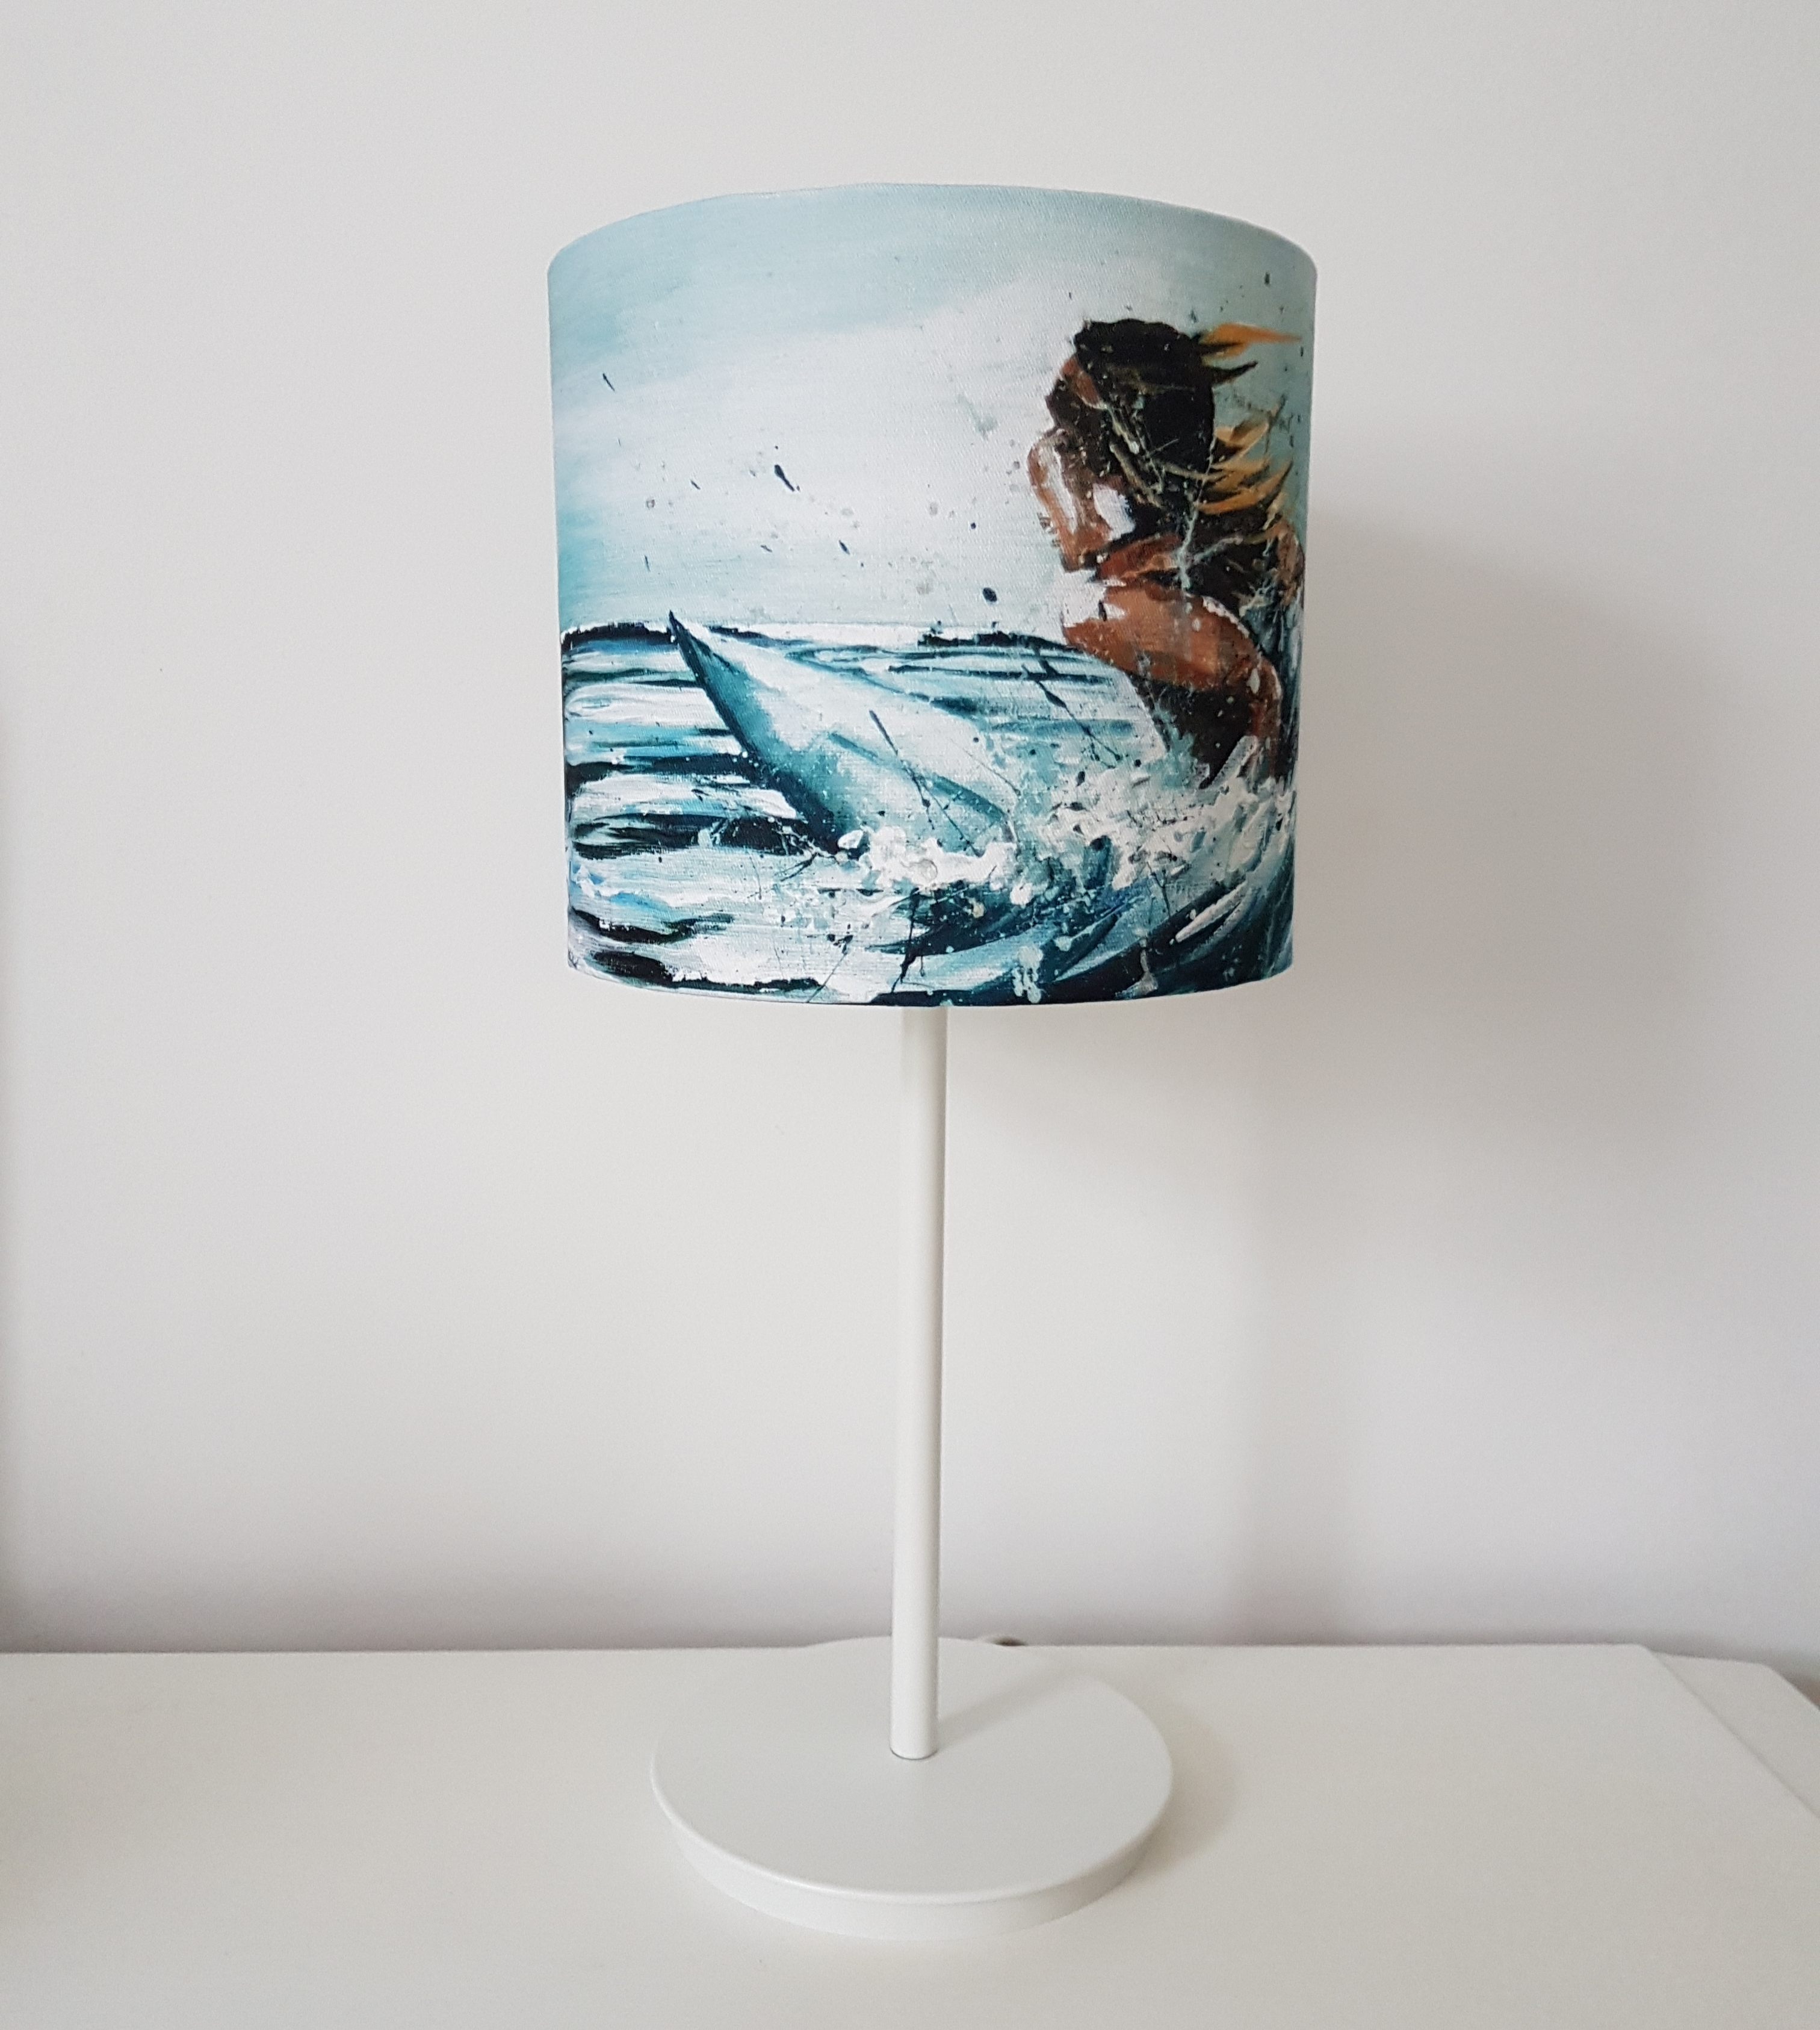 Lampshade. Soul surfer